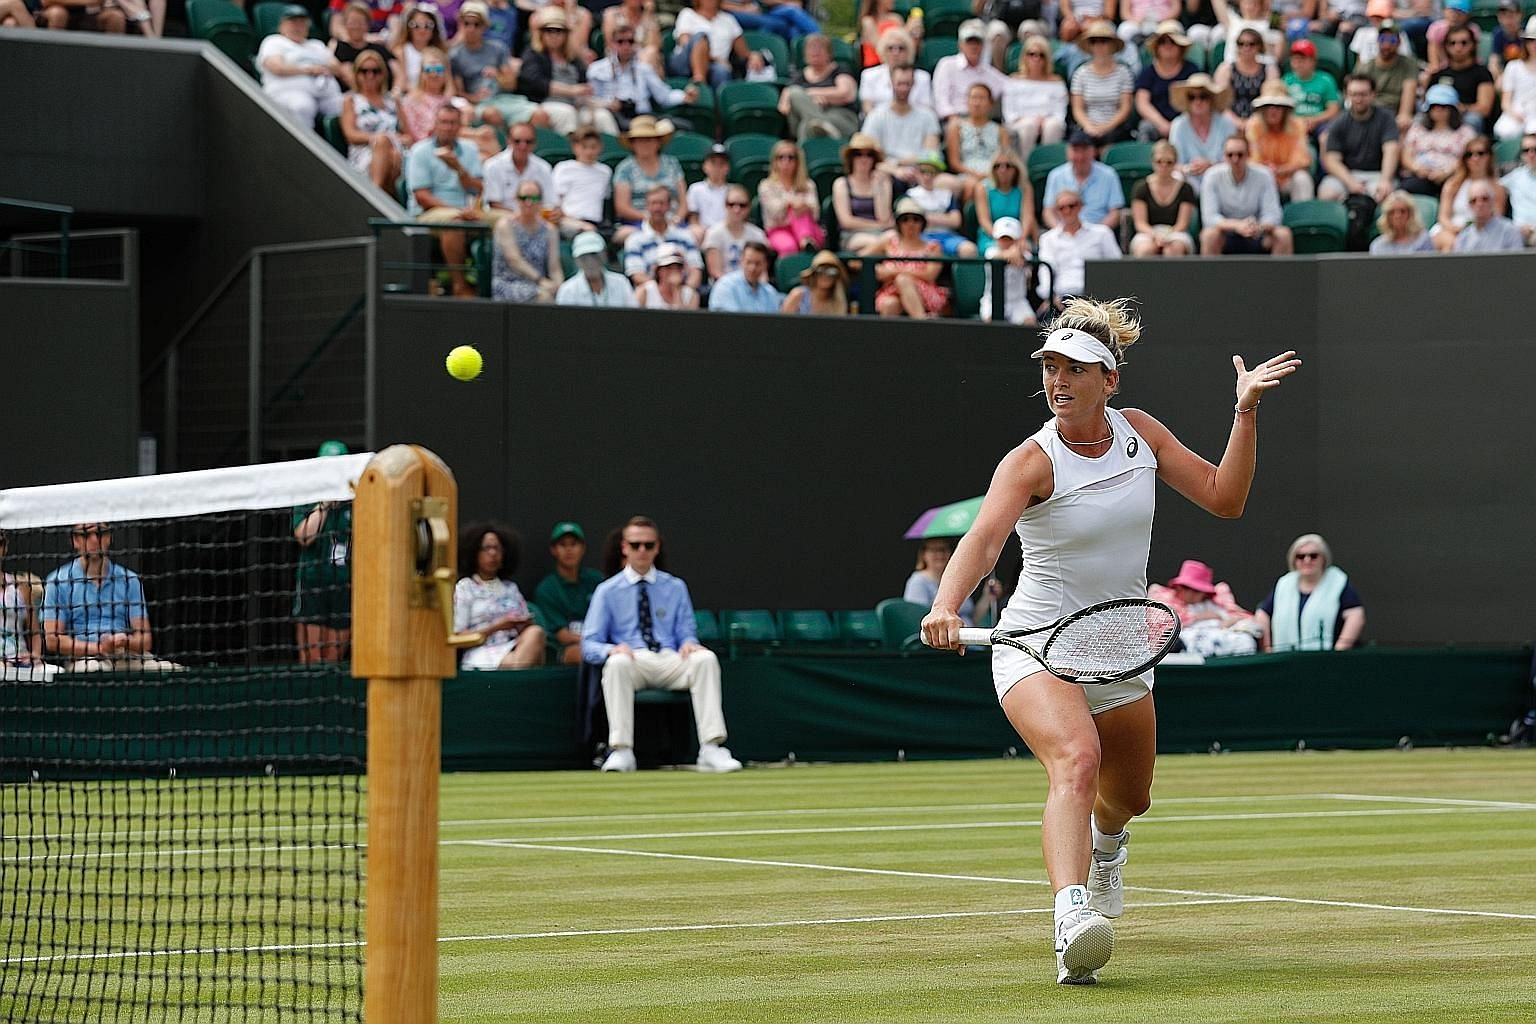 Vandeweghe making a backhand return in her win over fellow American Alison Riske in the third round. On current form, she will be confident of her chances against former world No. 1 Caroline Wozniacki in the last 16 today.